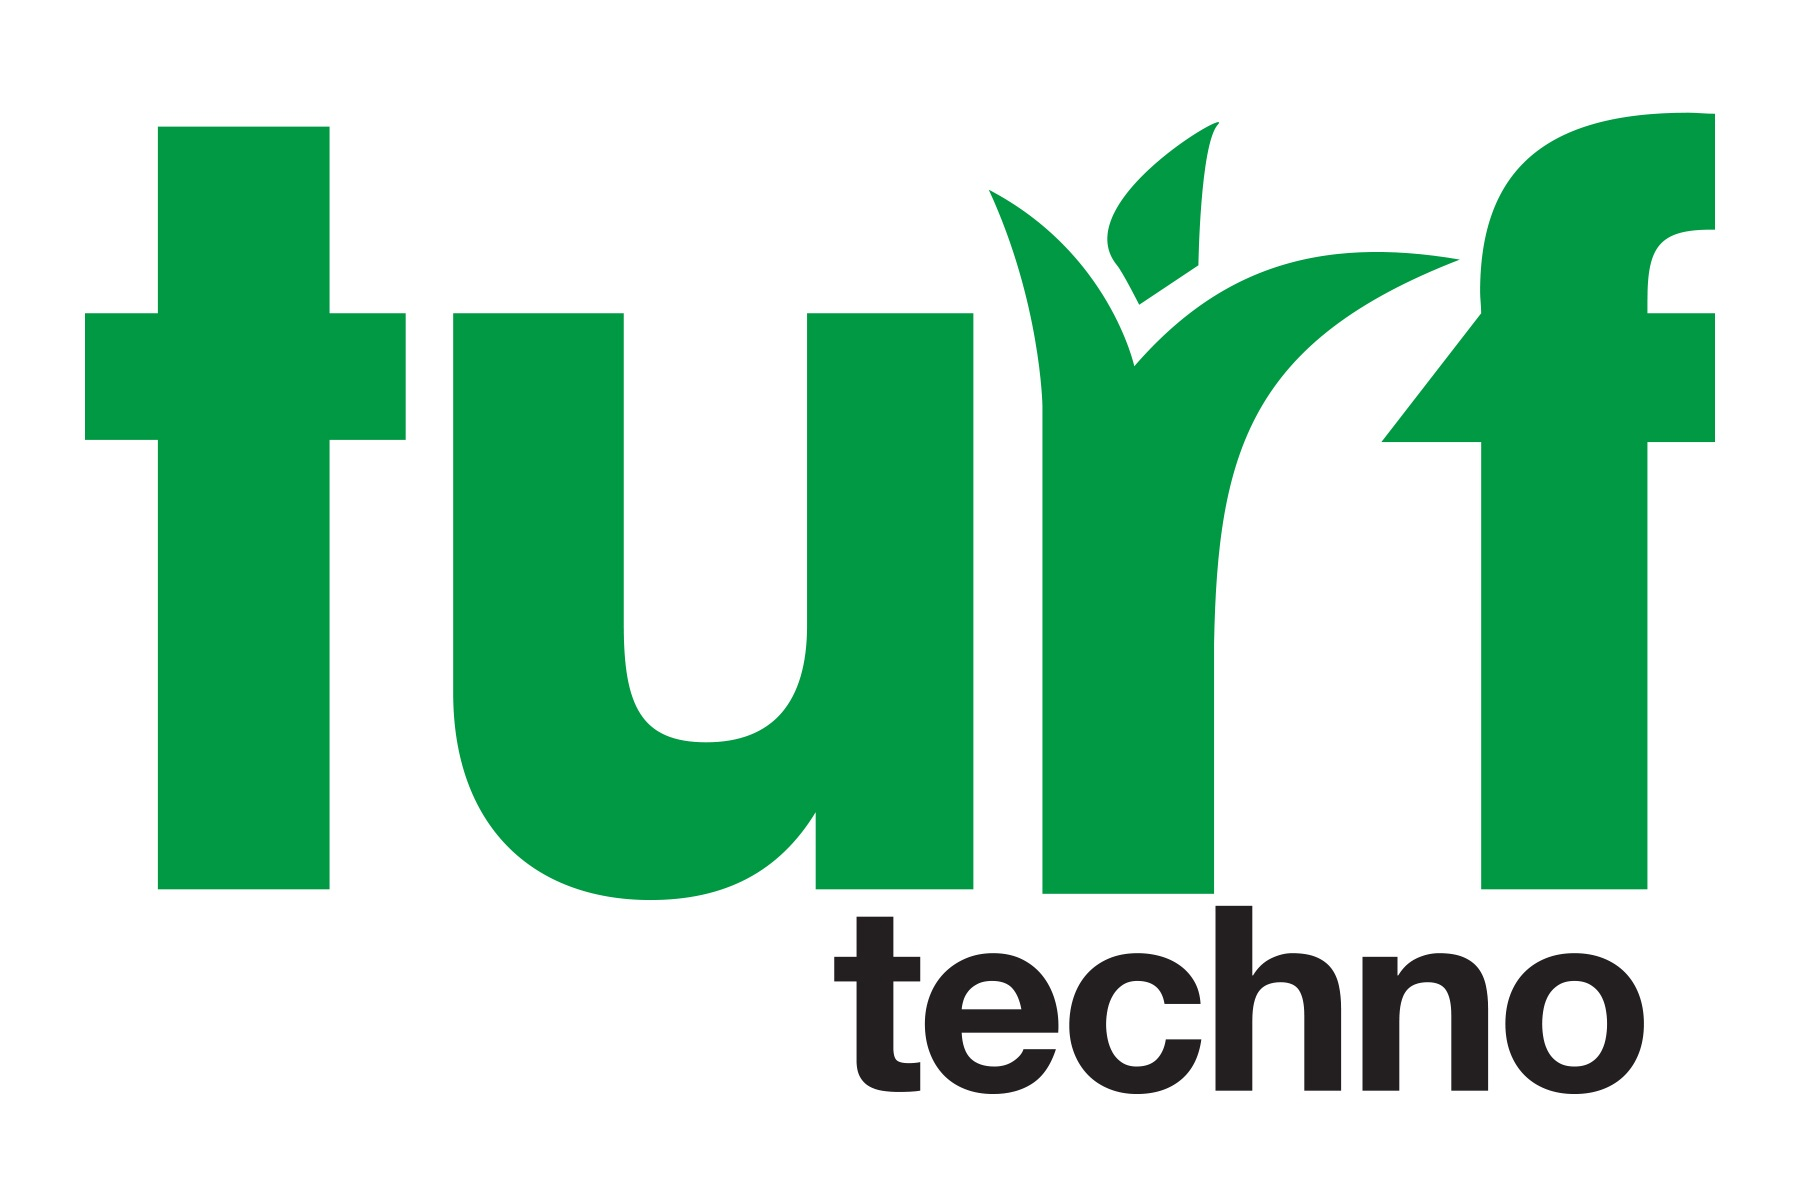 Superior efficacy ∙Competitively priced∙Bio-safe ∙Outstanding performance ∙Innovative product line of turf colorants, patented spray boom applicator and unsurpassed plant-based cleaning and lubrication.  -